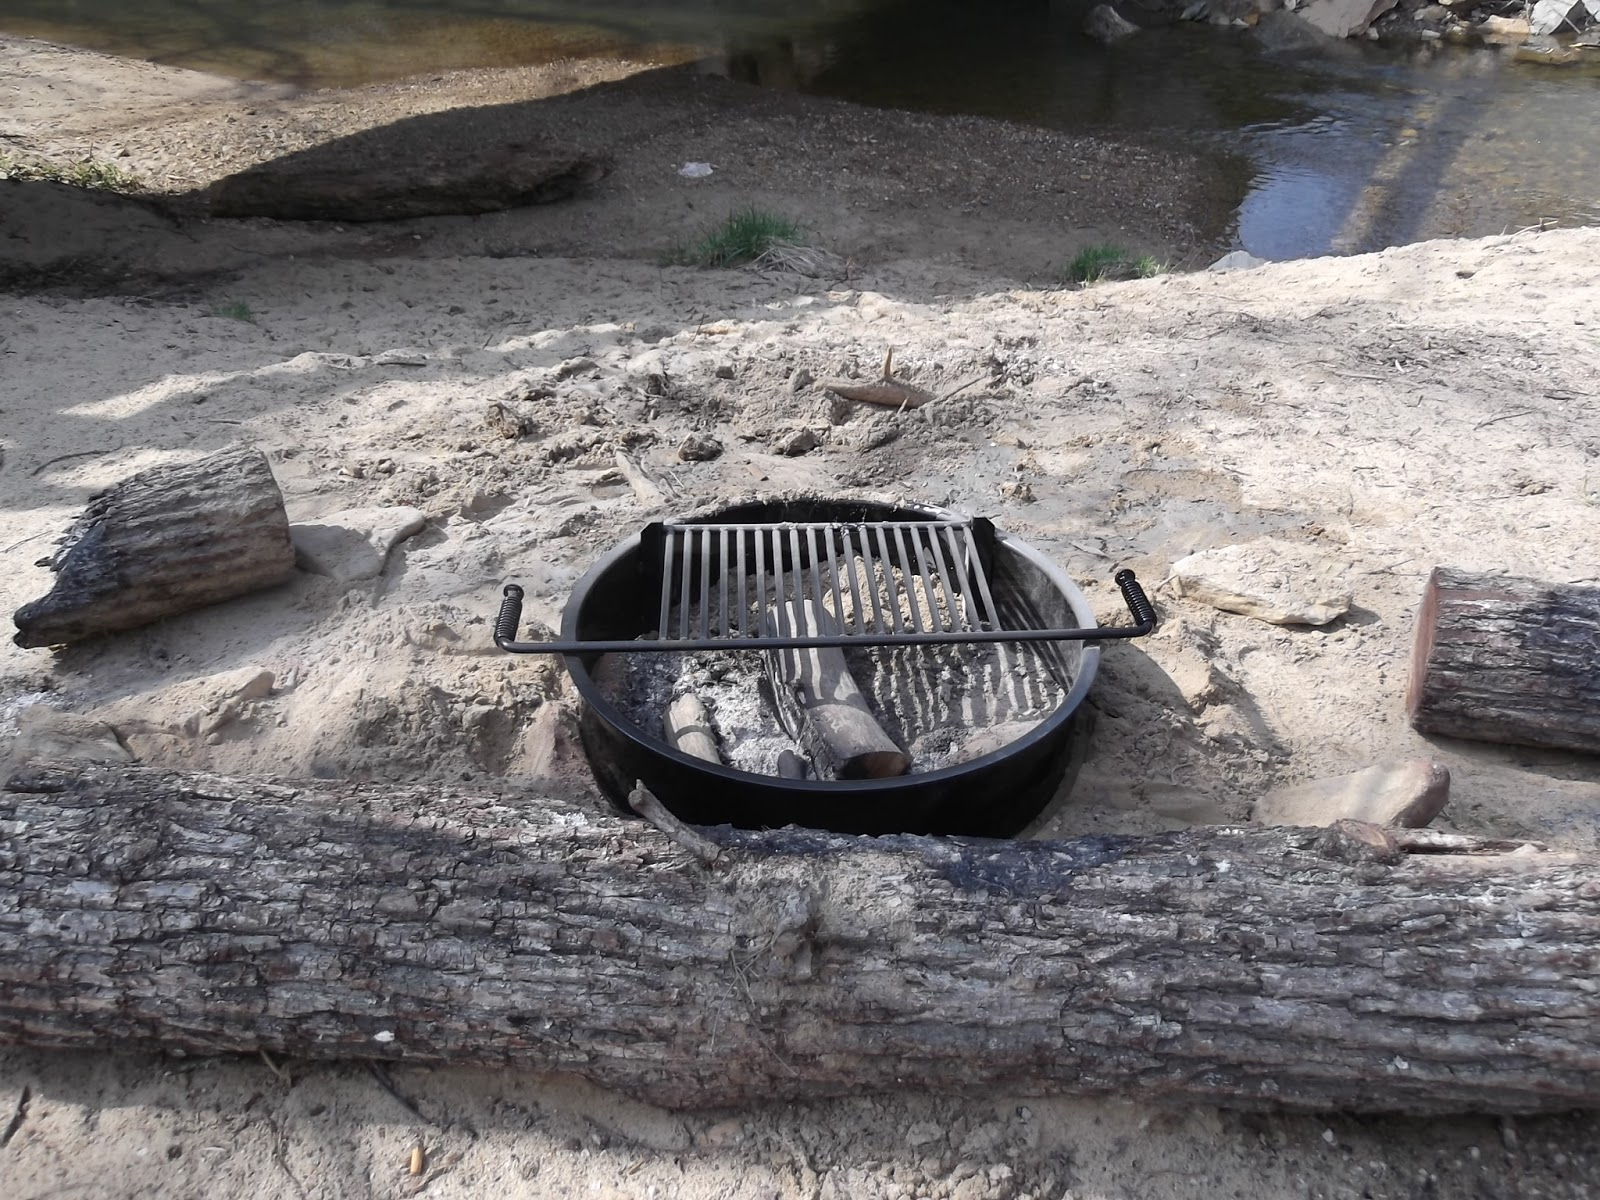 Brand new fire grill